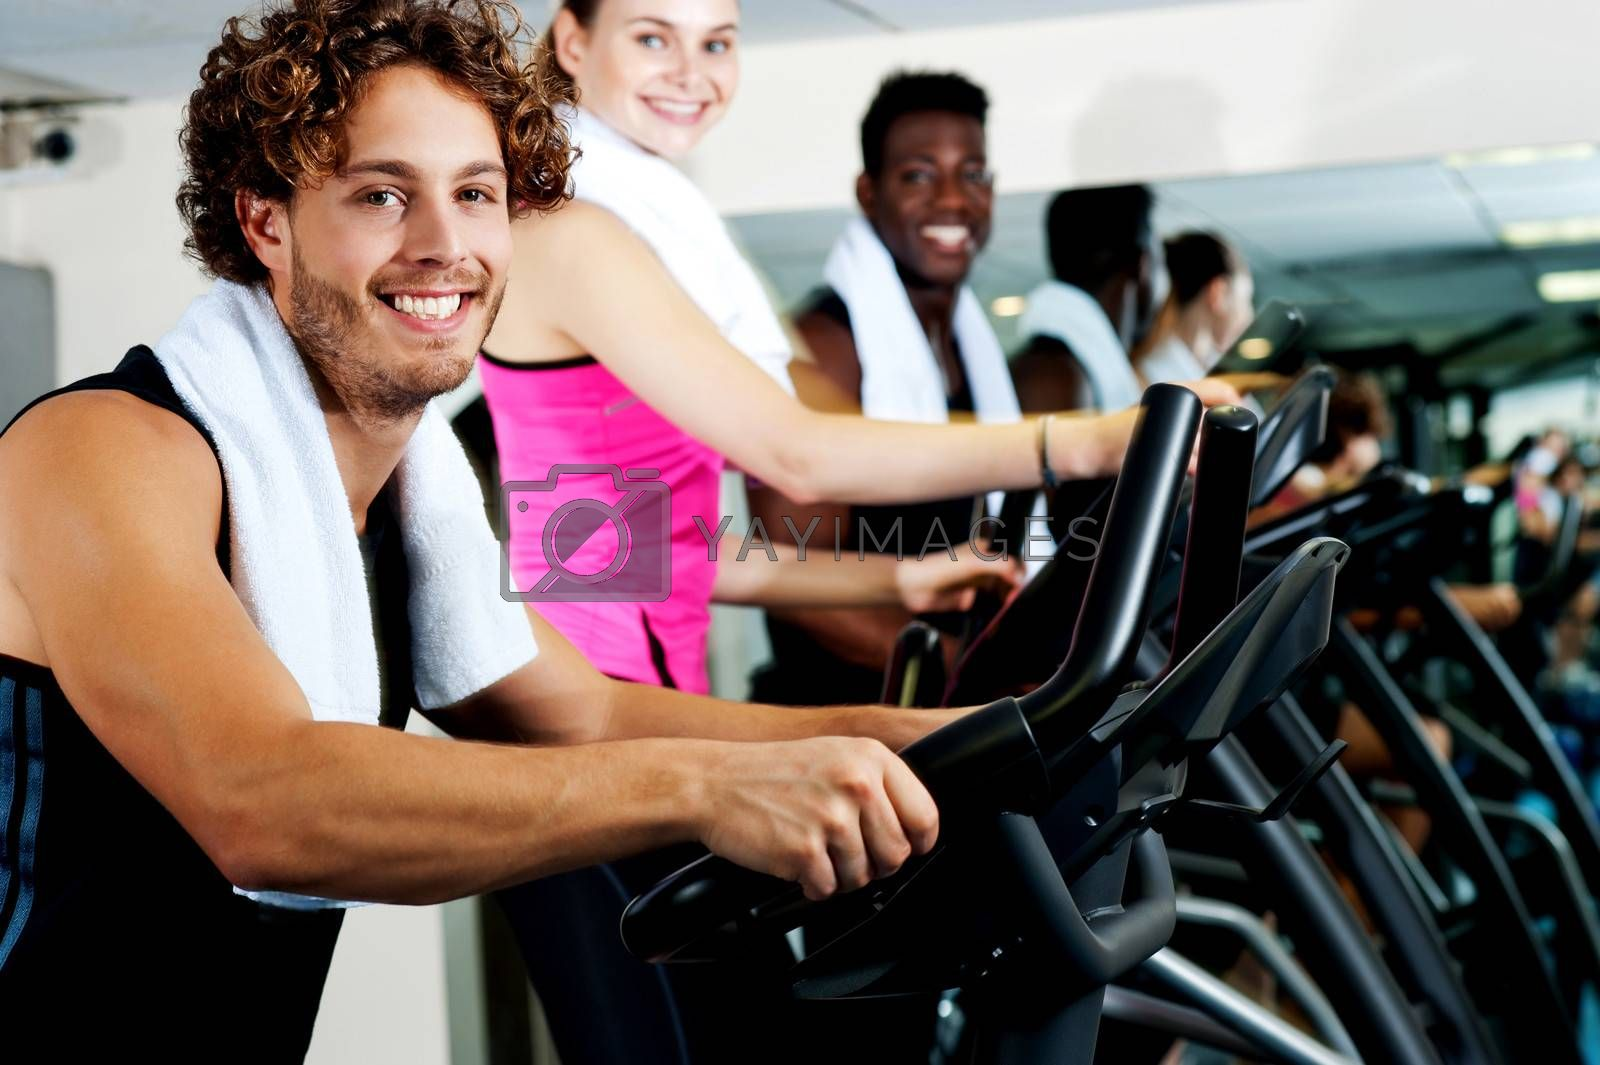 Smiling young people cycling at the fitness center